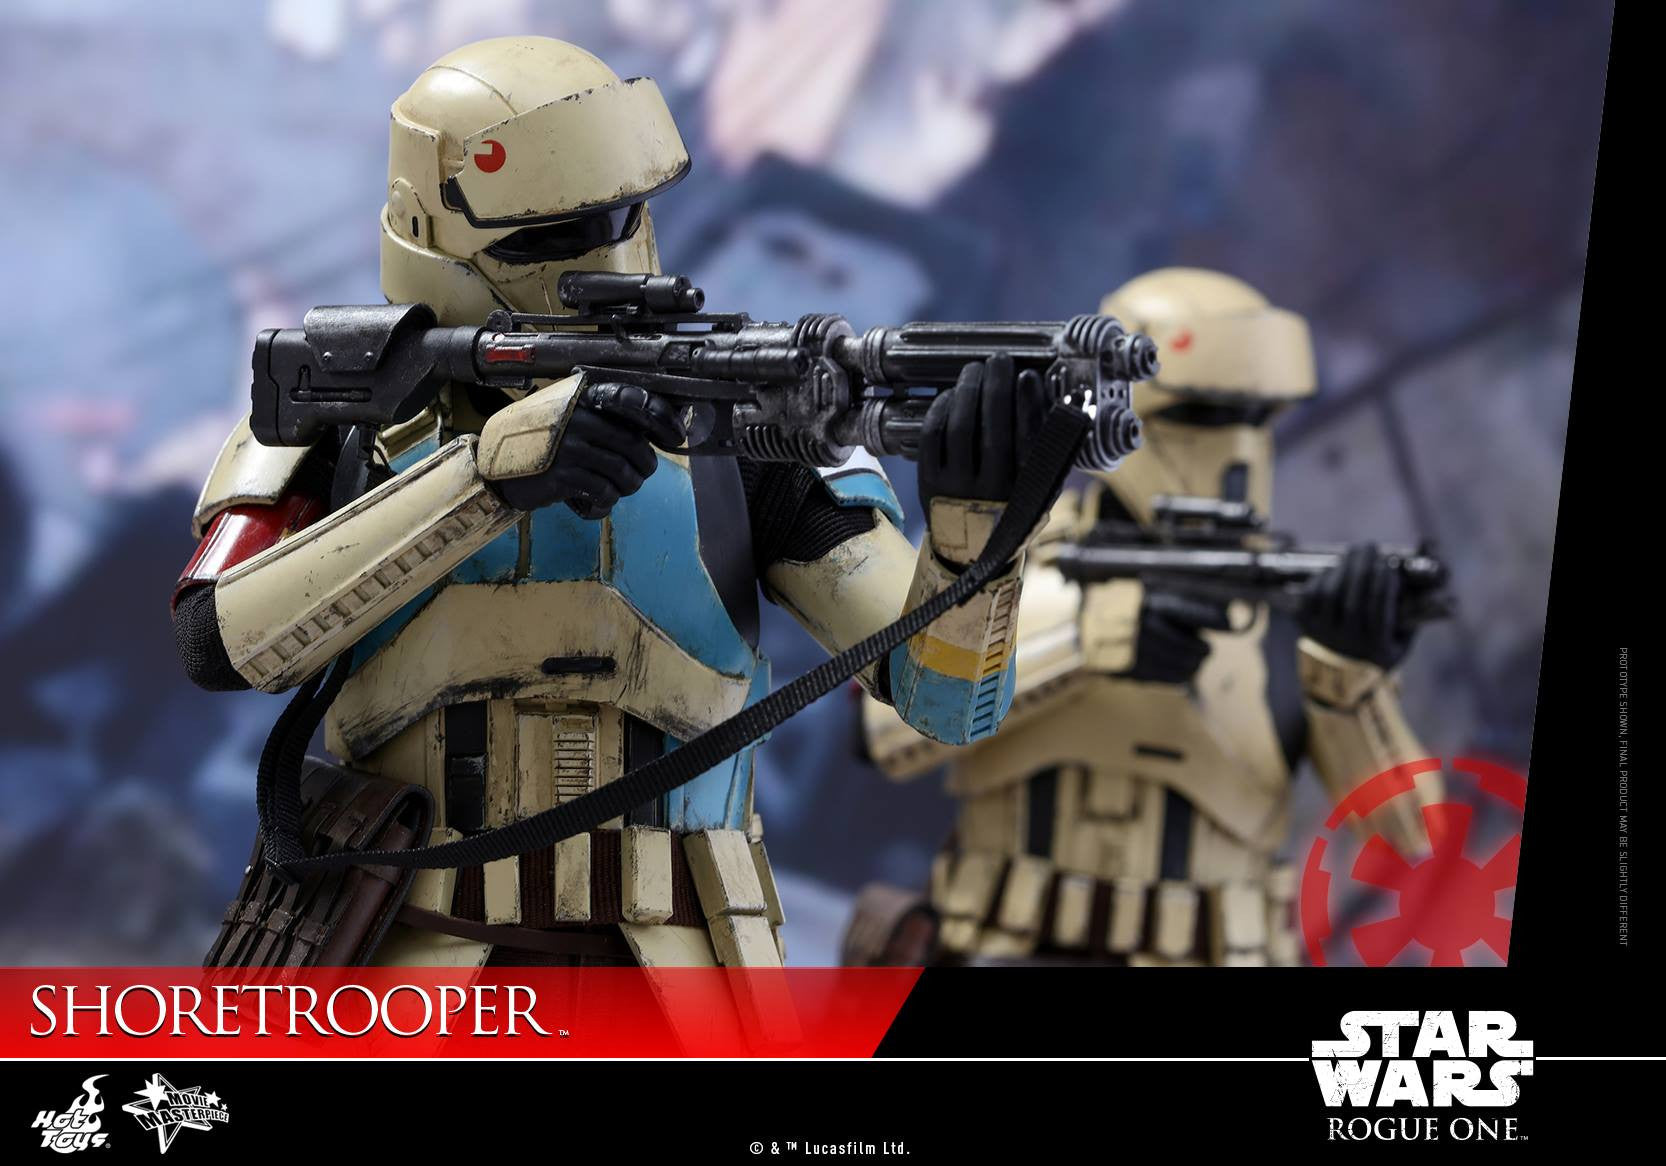 Hot Toys - MMS389 - Rogue One: A Star Wars Story - Shoretrooper - Marvelous Toys - 9